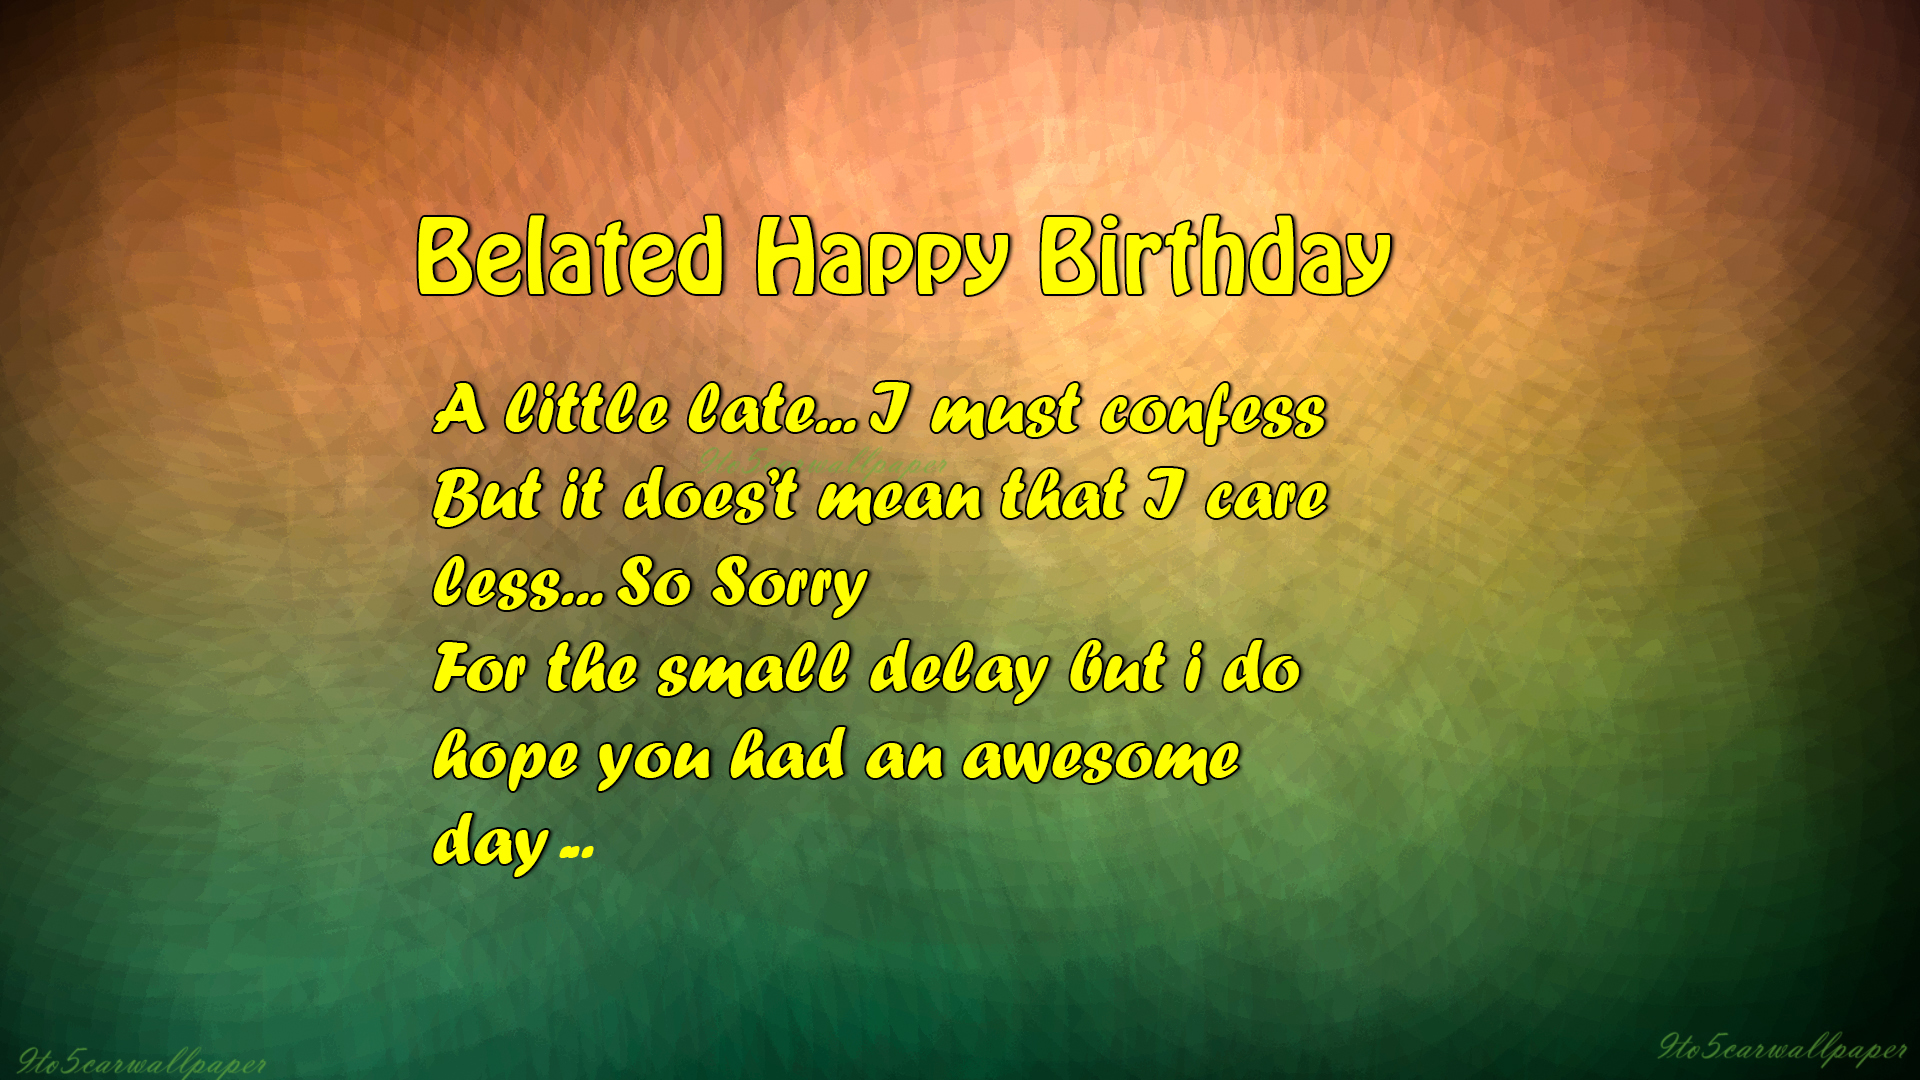 Happy Birthday Quotes Hd Images ~ Belated happy birthday quotes images and wallpapers